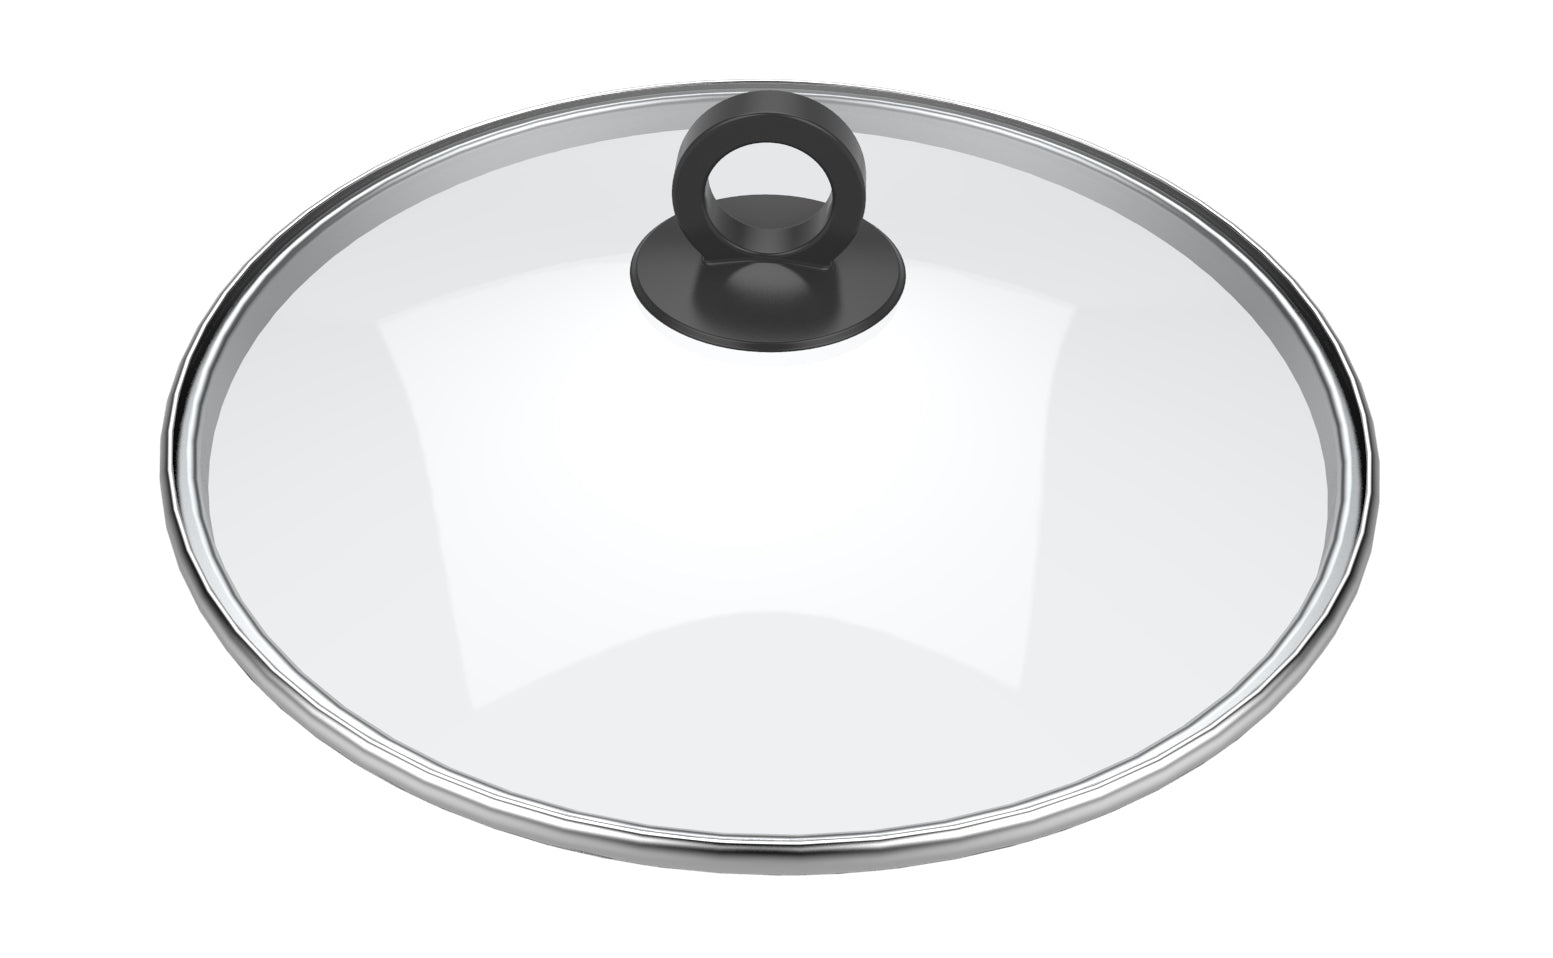 BM-DGW60280A Duo Slow Cooker Tempered Glass Lid